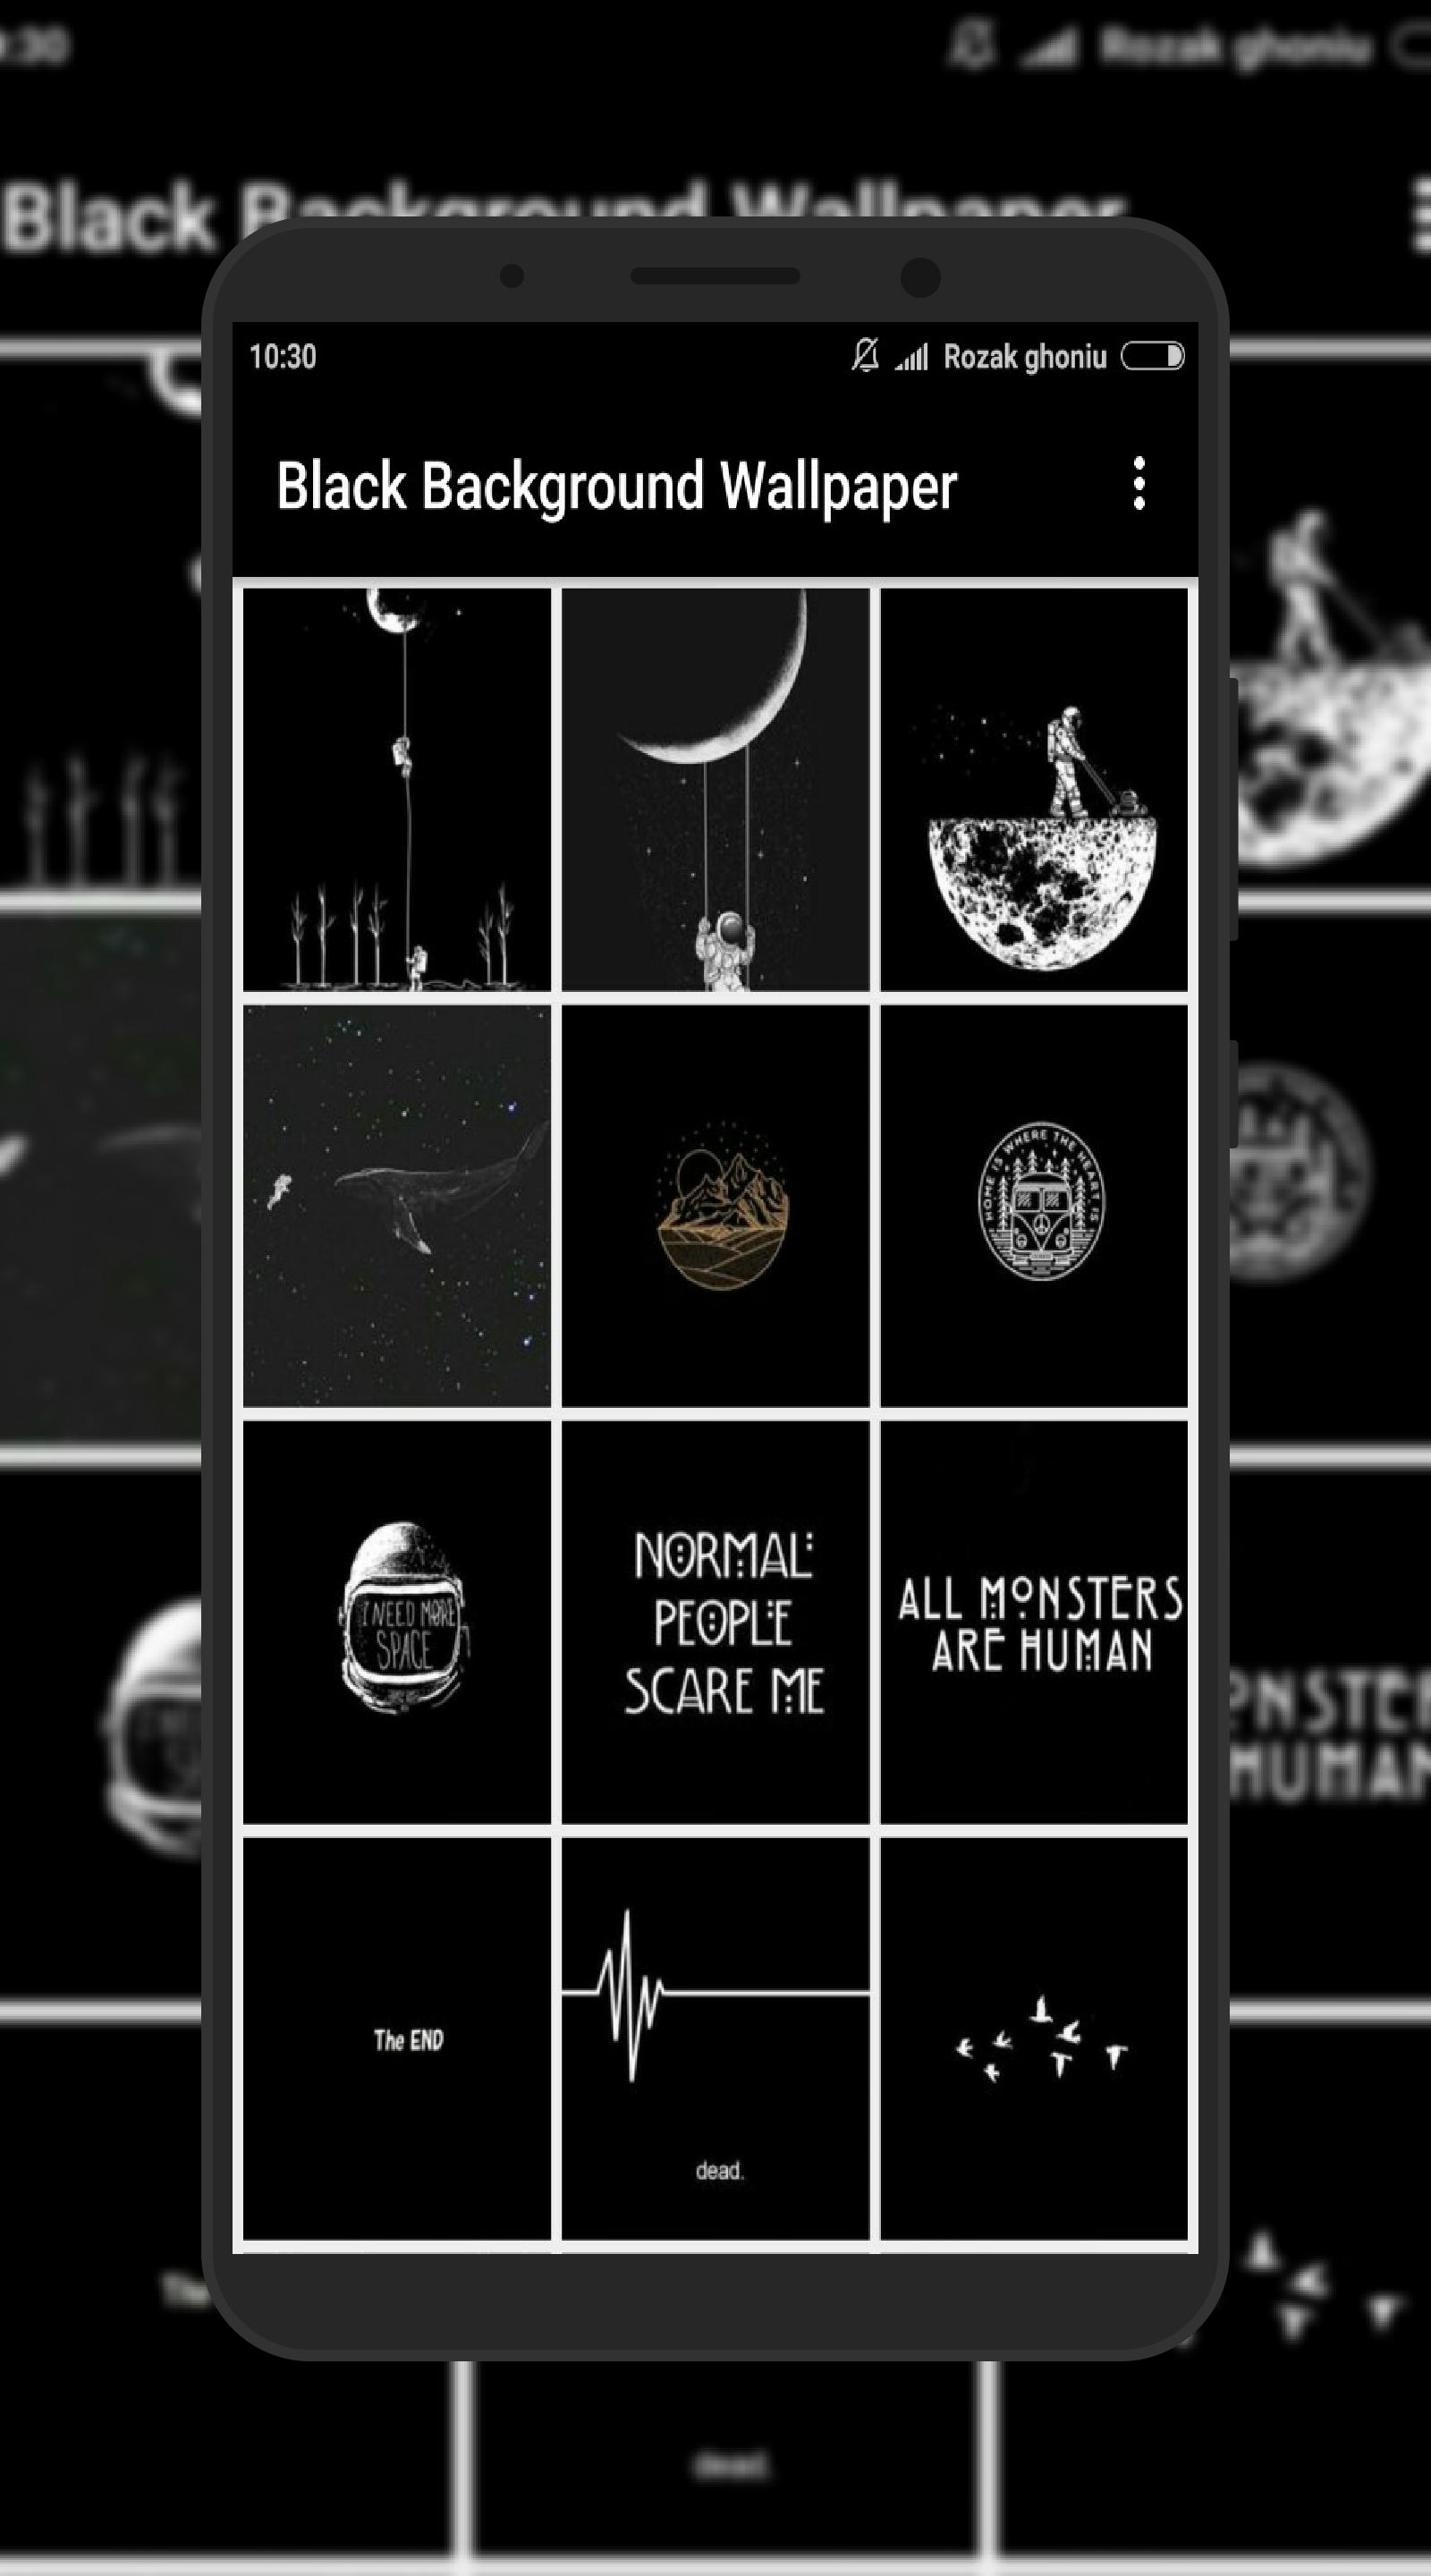 Black Background S Wallpaper For Android Apk Download